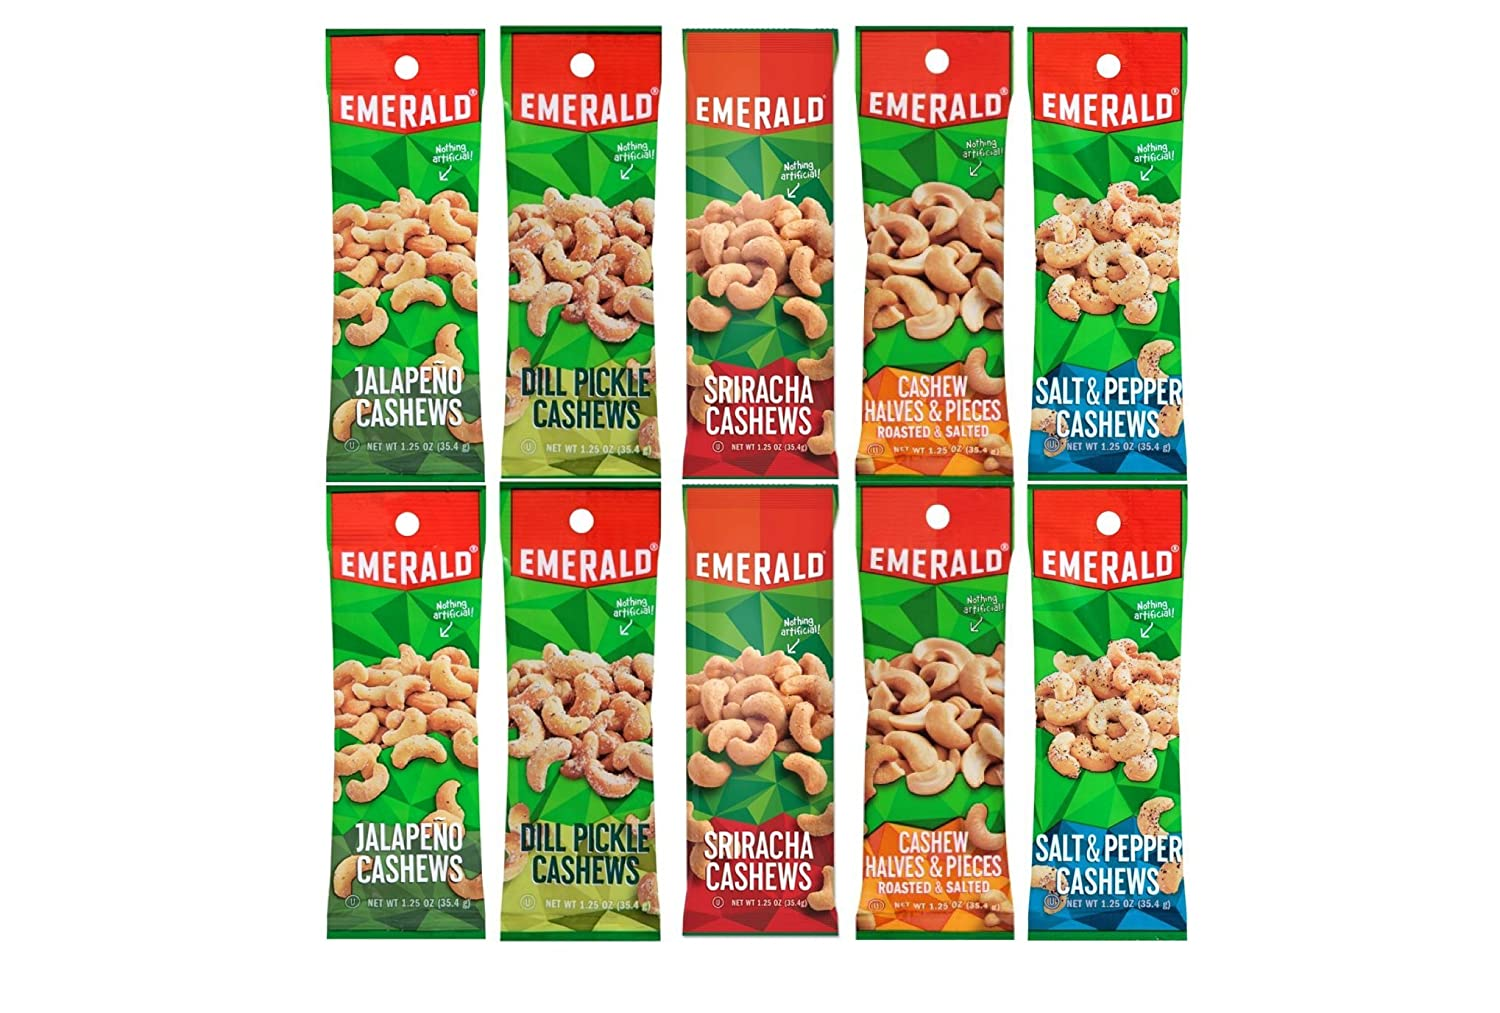 Emerald Snacks Flavored Cashews Variety Bundle - Assortment Featuring Dill Pickle, Jalapeno, Salt & Pepper, Sriracha and Roasted & Salted